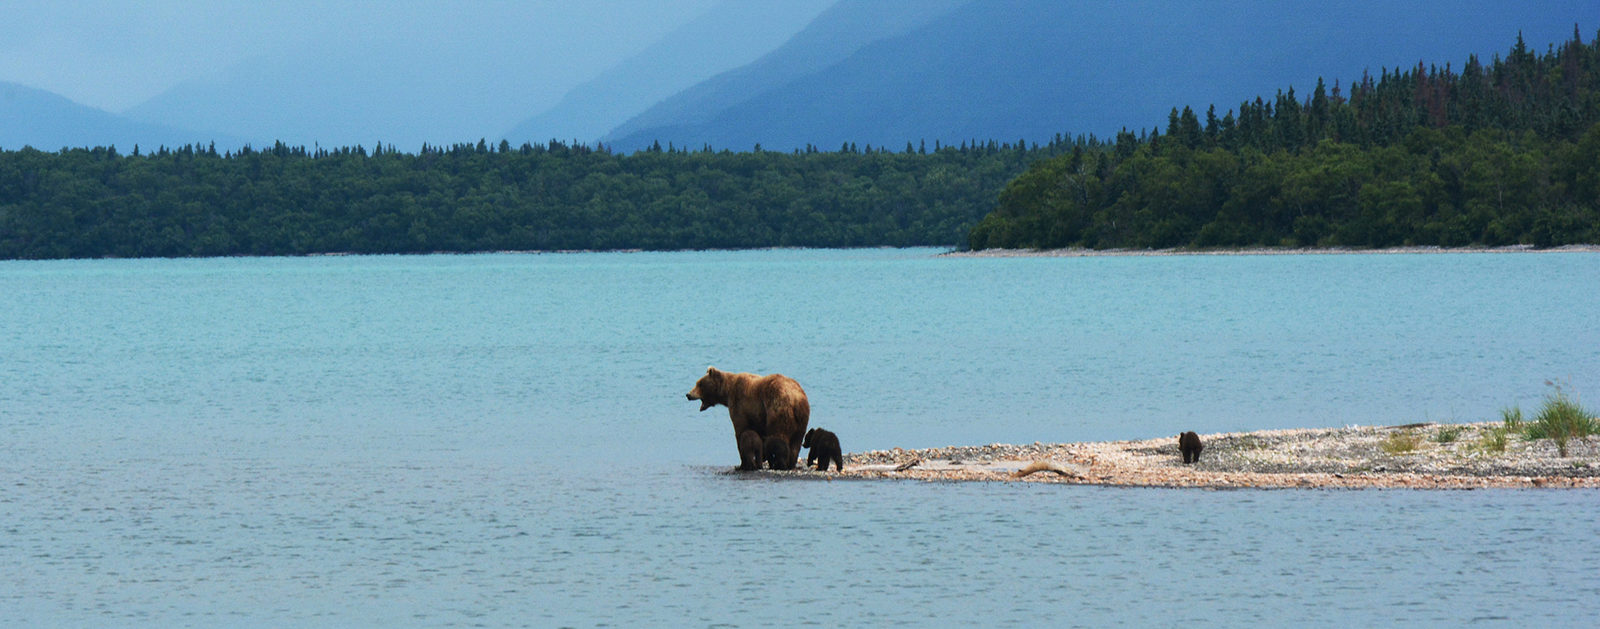 Grizzly bears on Naknek Lake in Katmai National Park.   Photo: Paxzon Woelber, Cinders to Sea Expedition